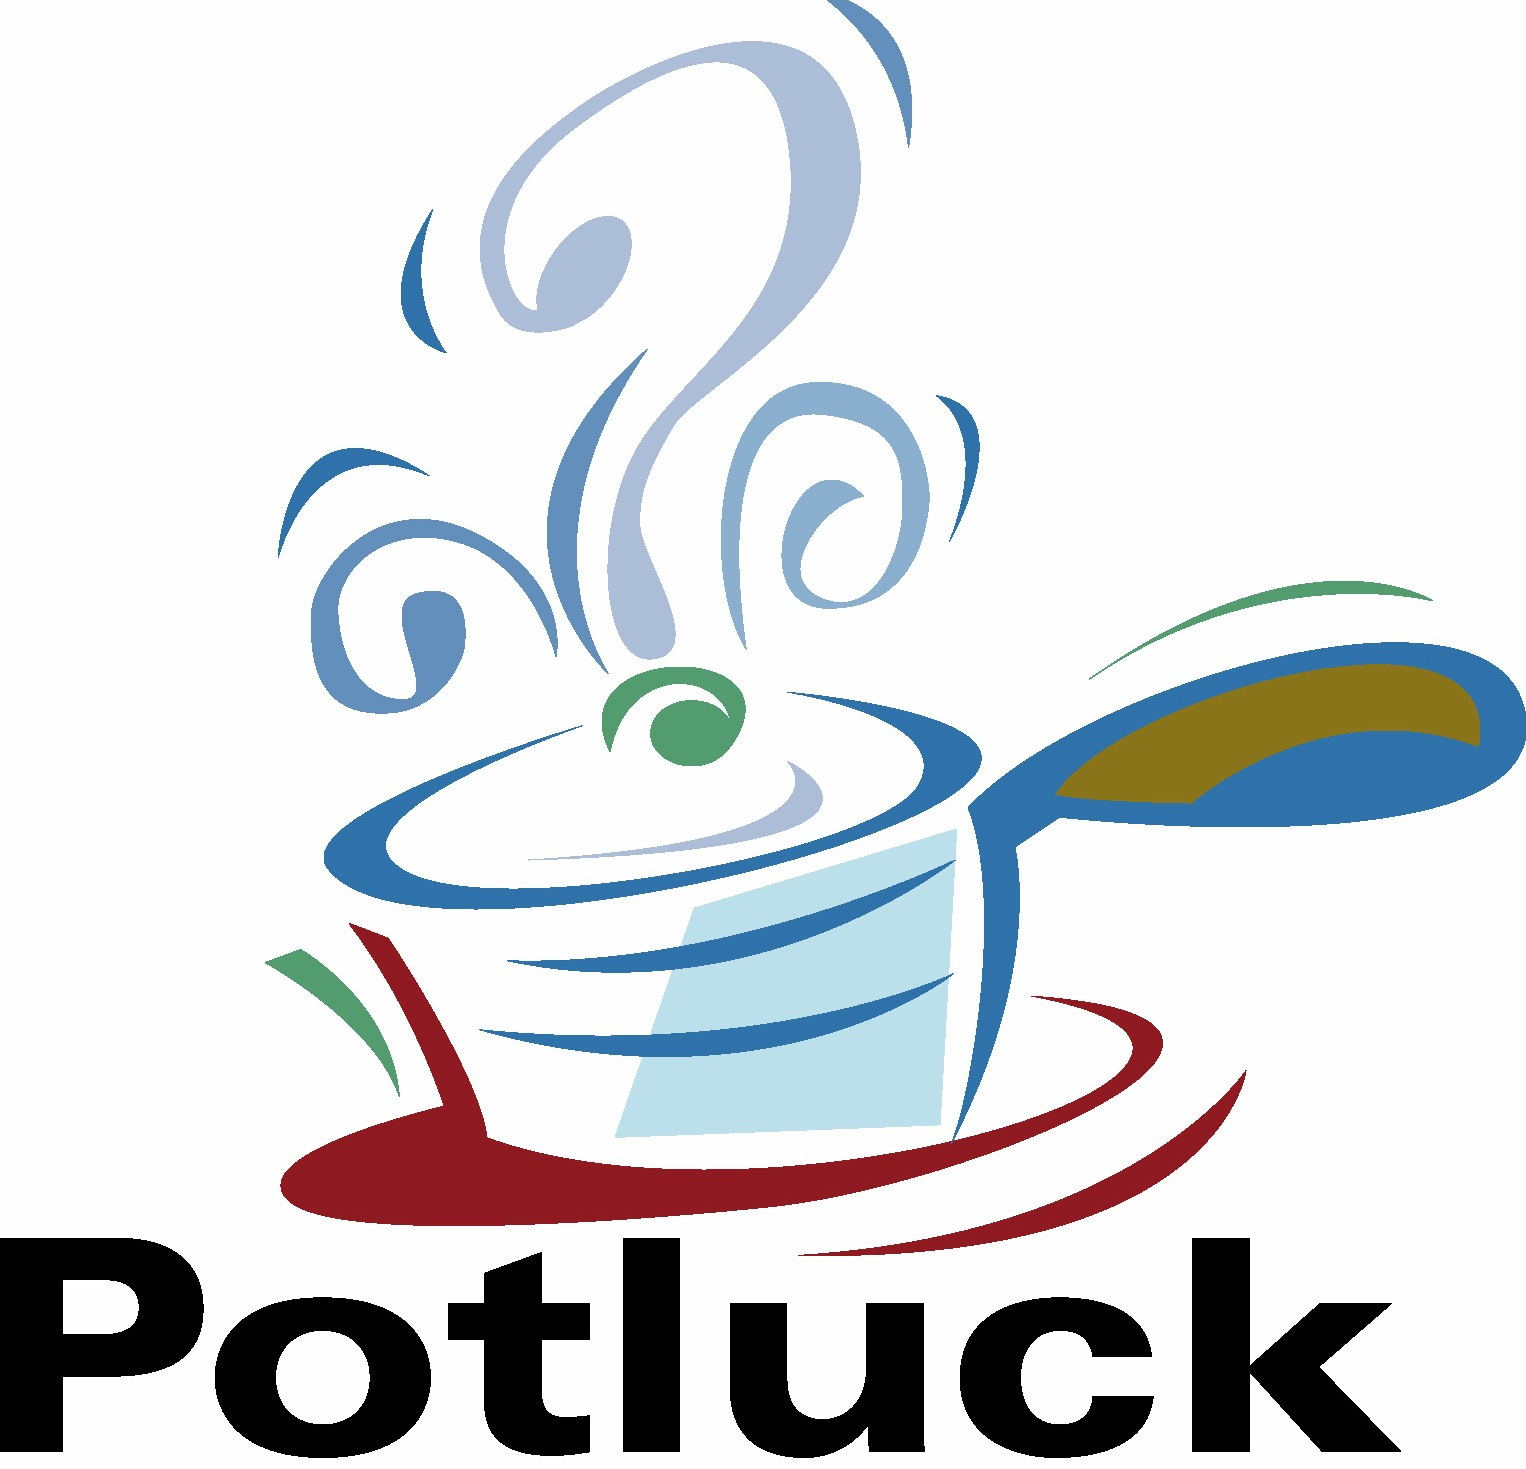 Clip Art Potluck Clip Art funny potluck lunch clipart kid displaying 19 images for images